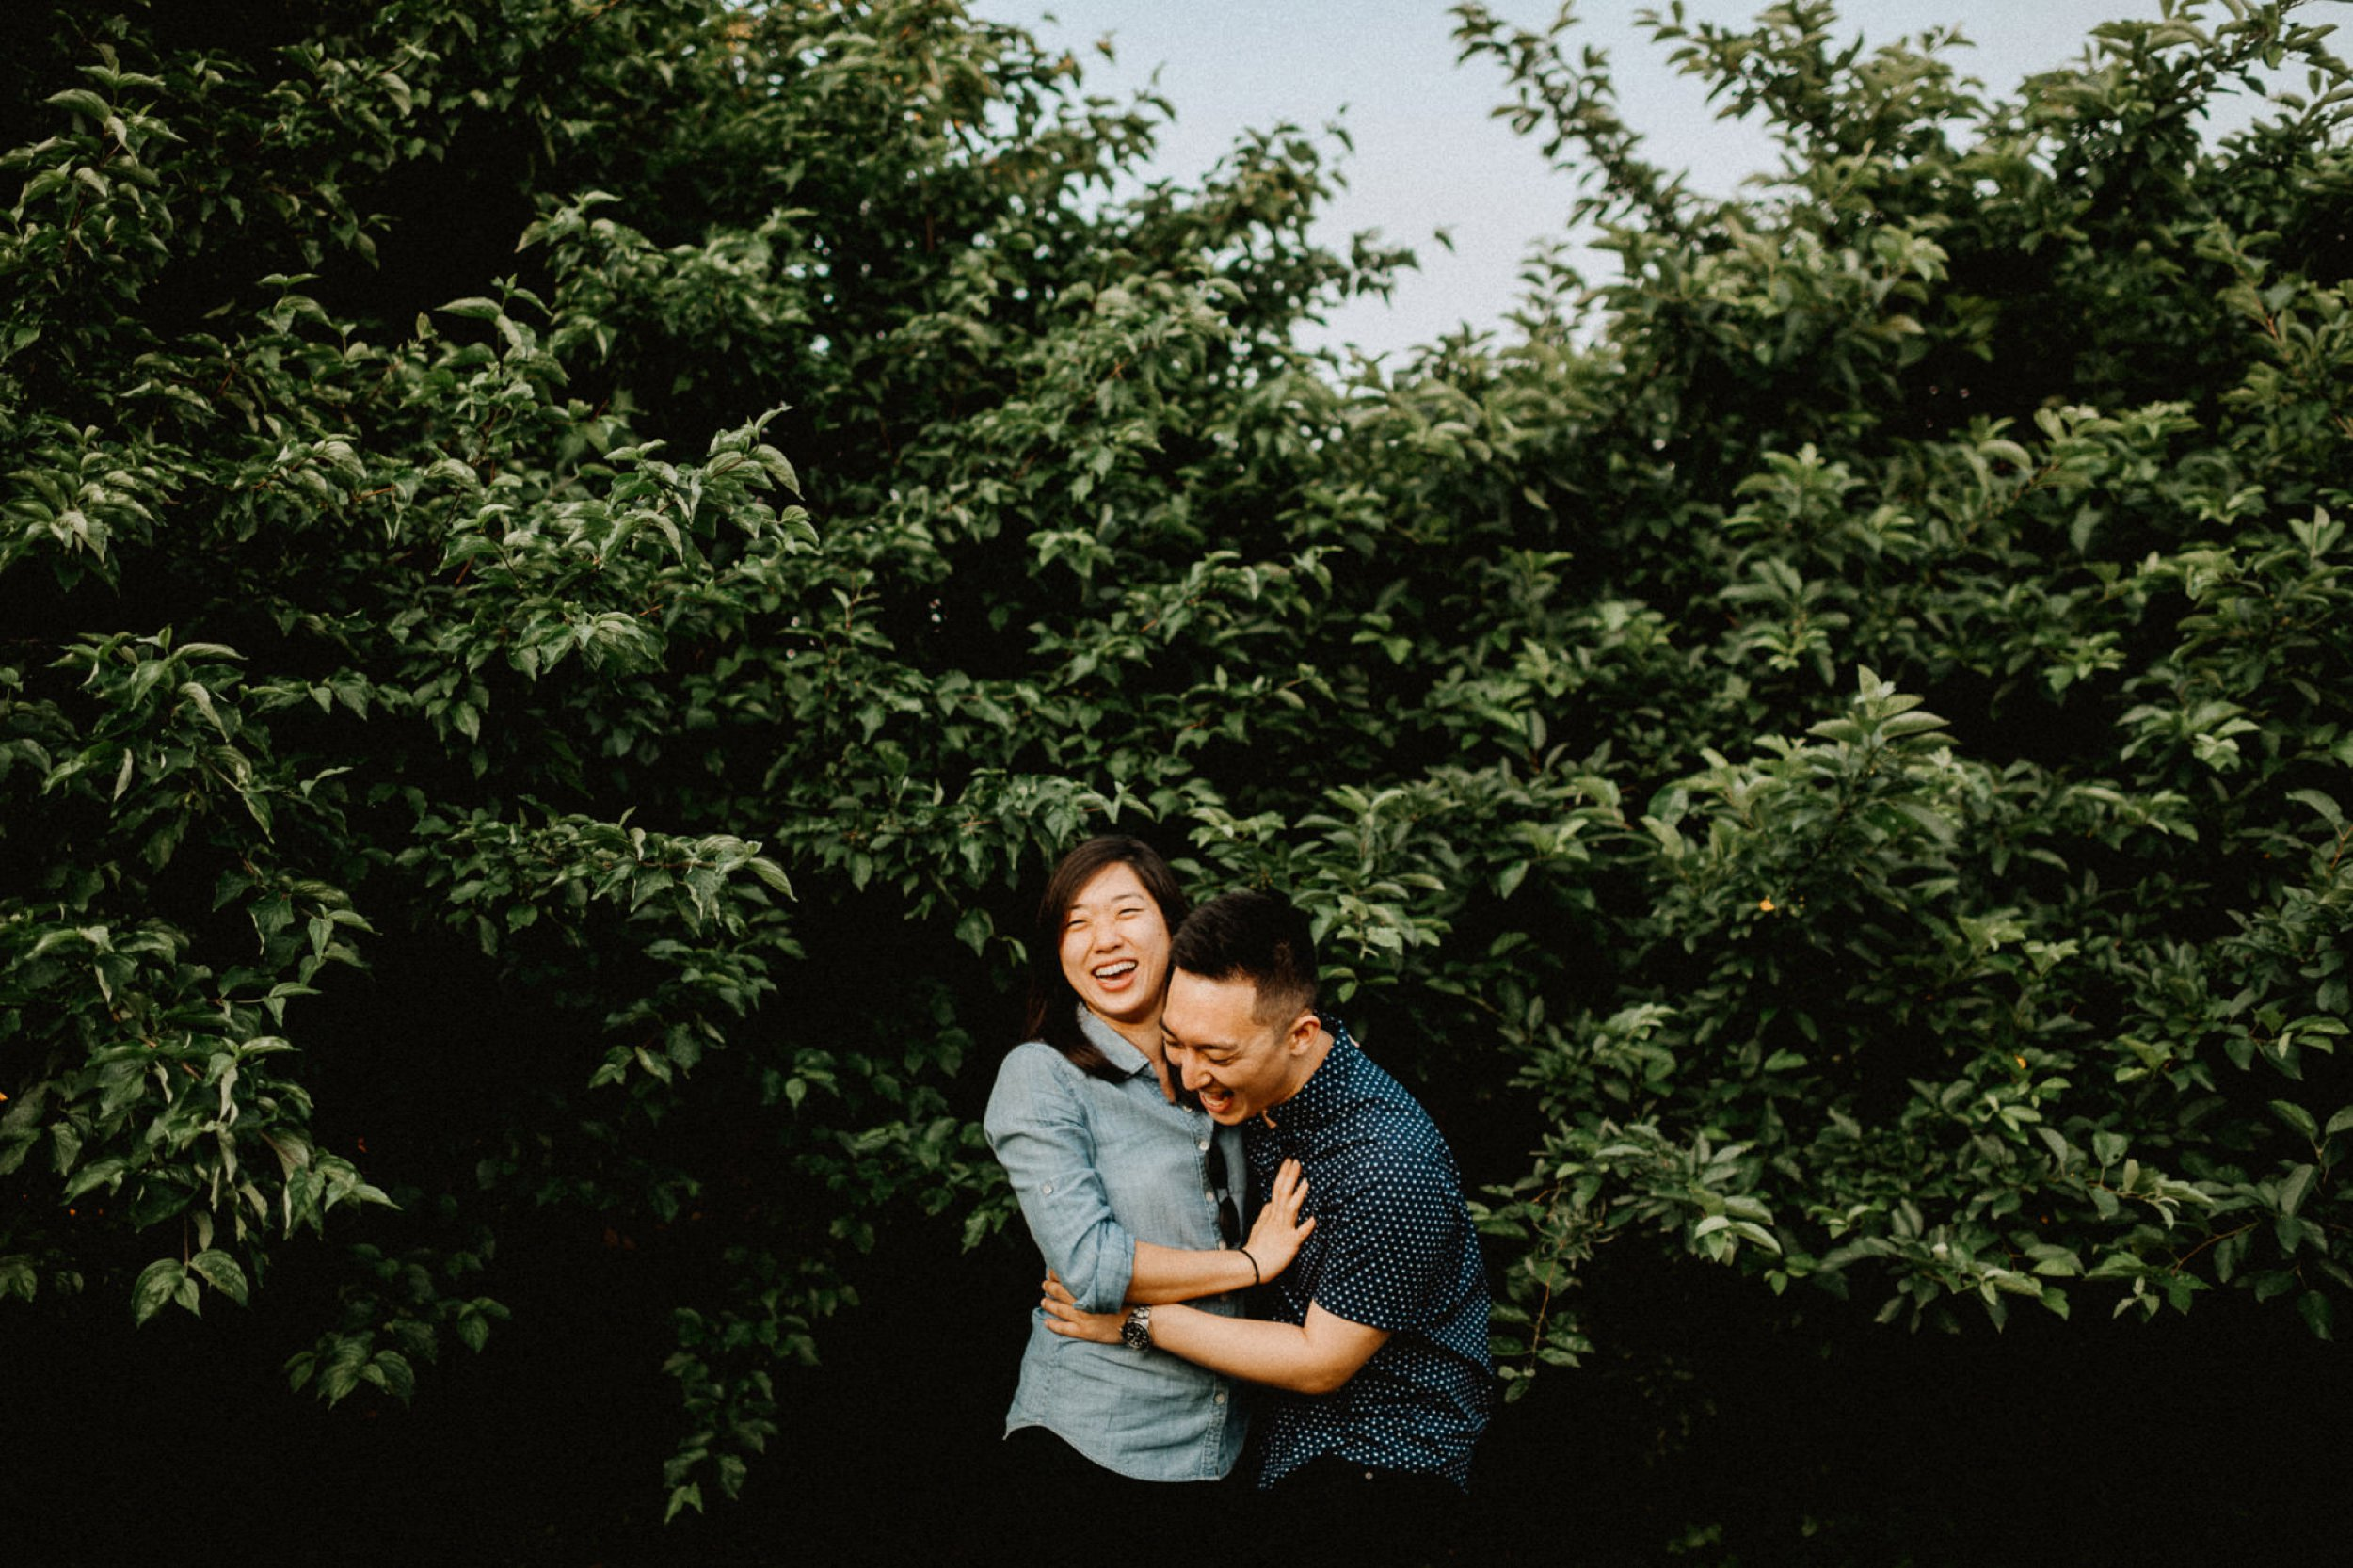 philly_engagement_session-17.jpg